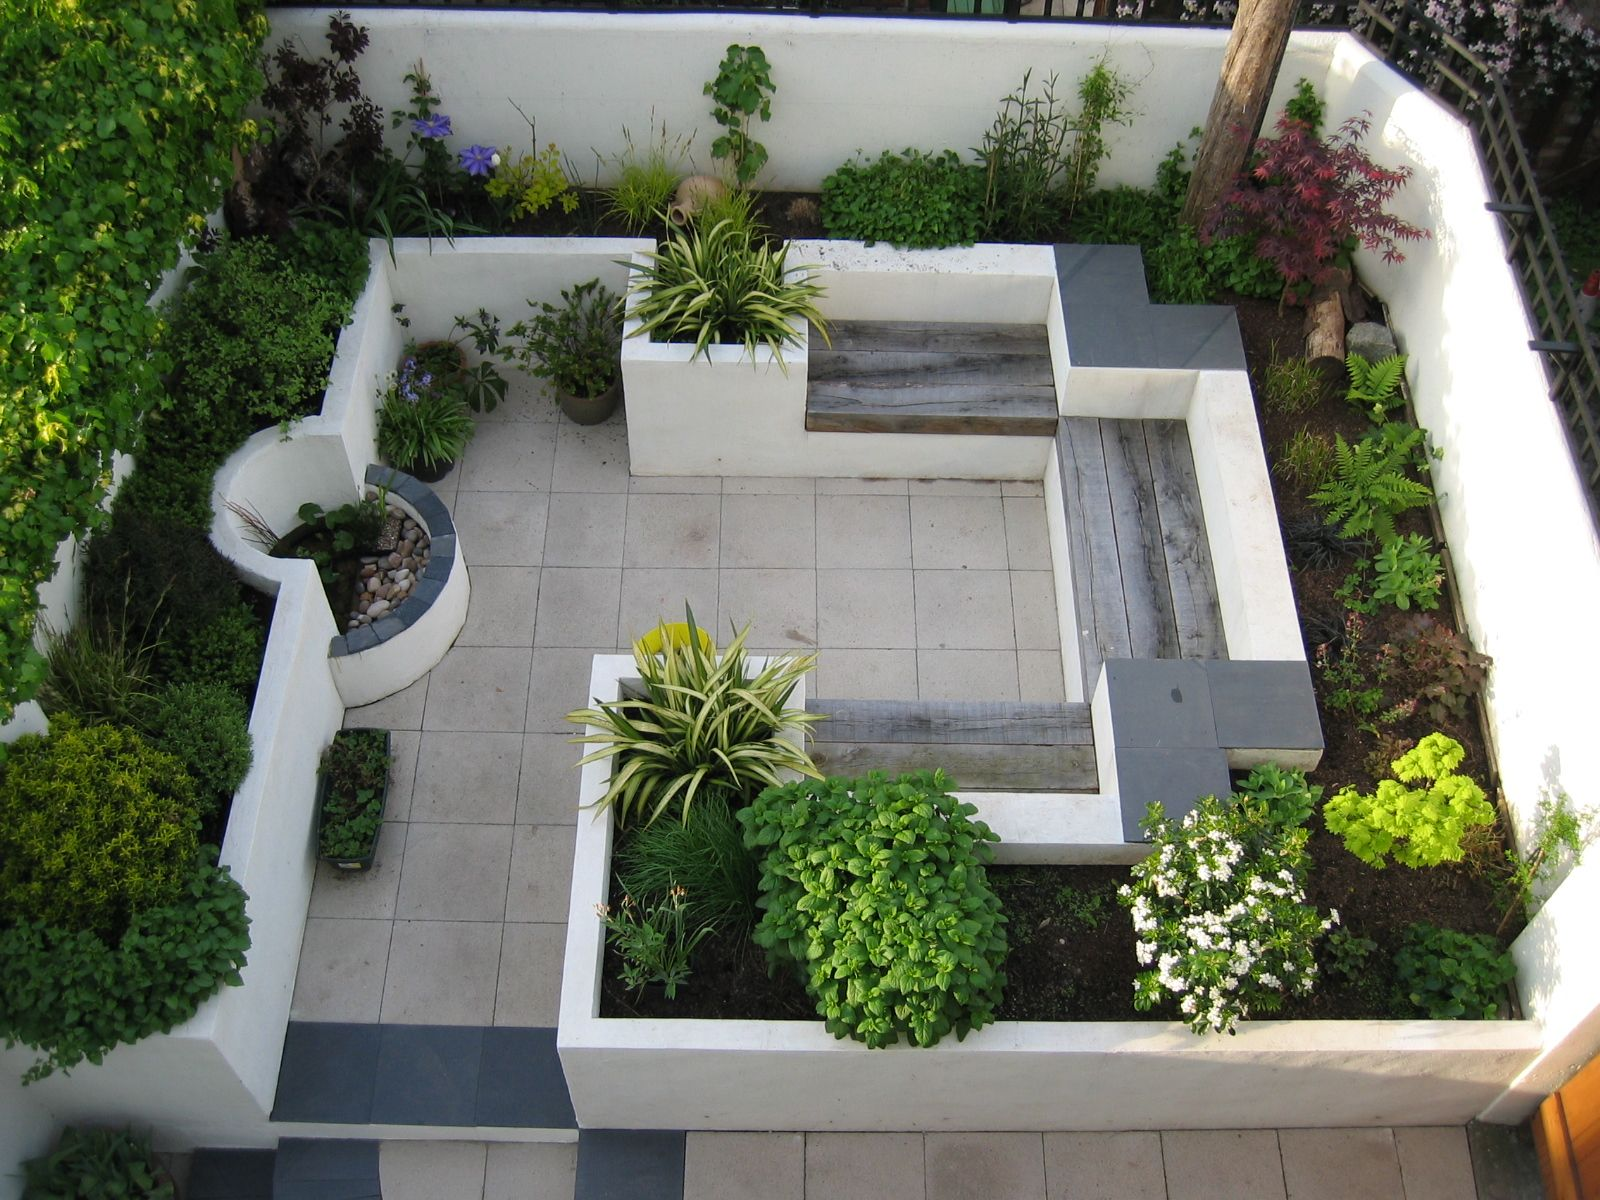 This modern courtyard garden makes good use of a small for Small garden courtyard designs